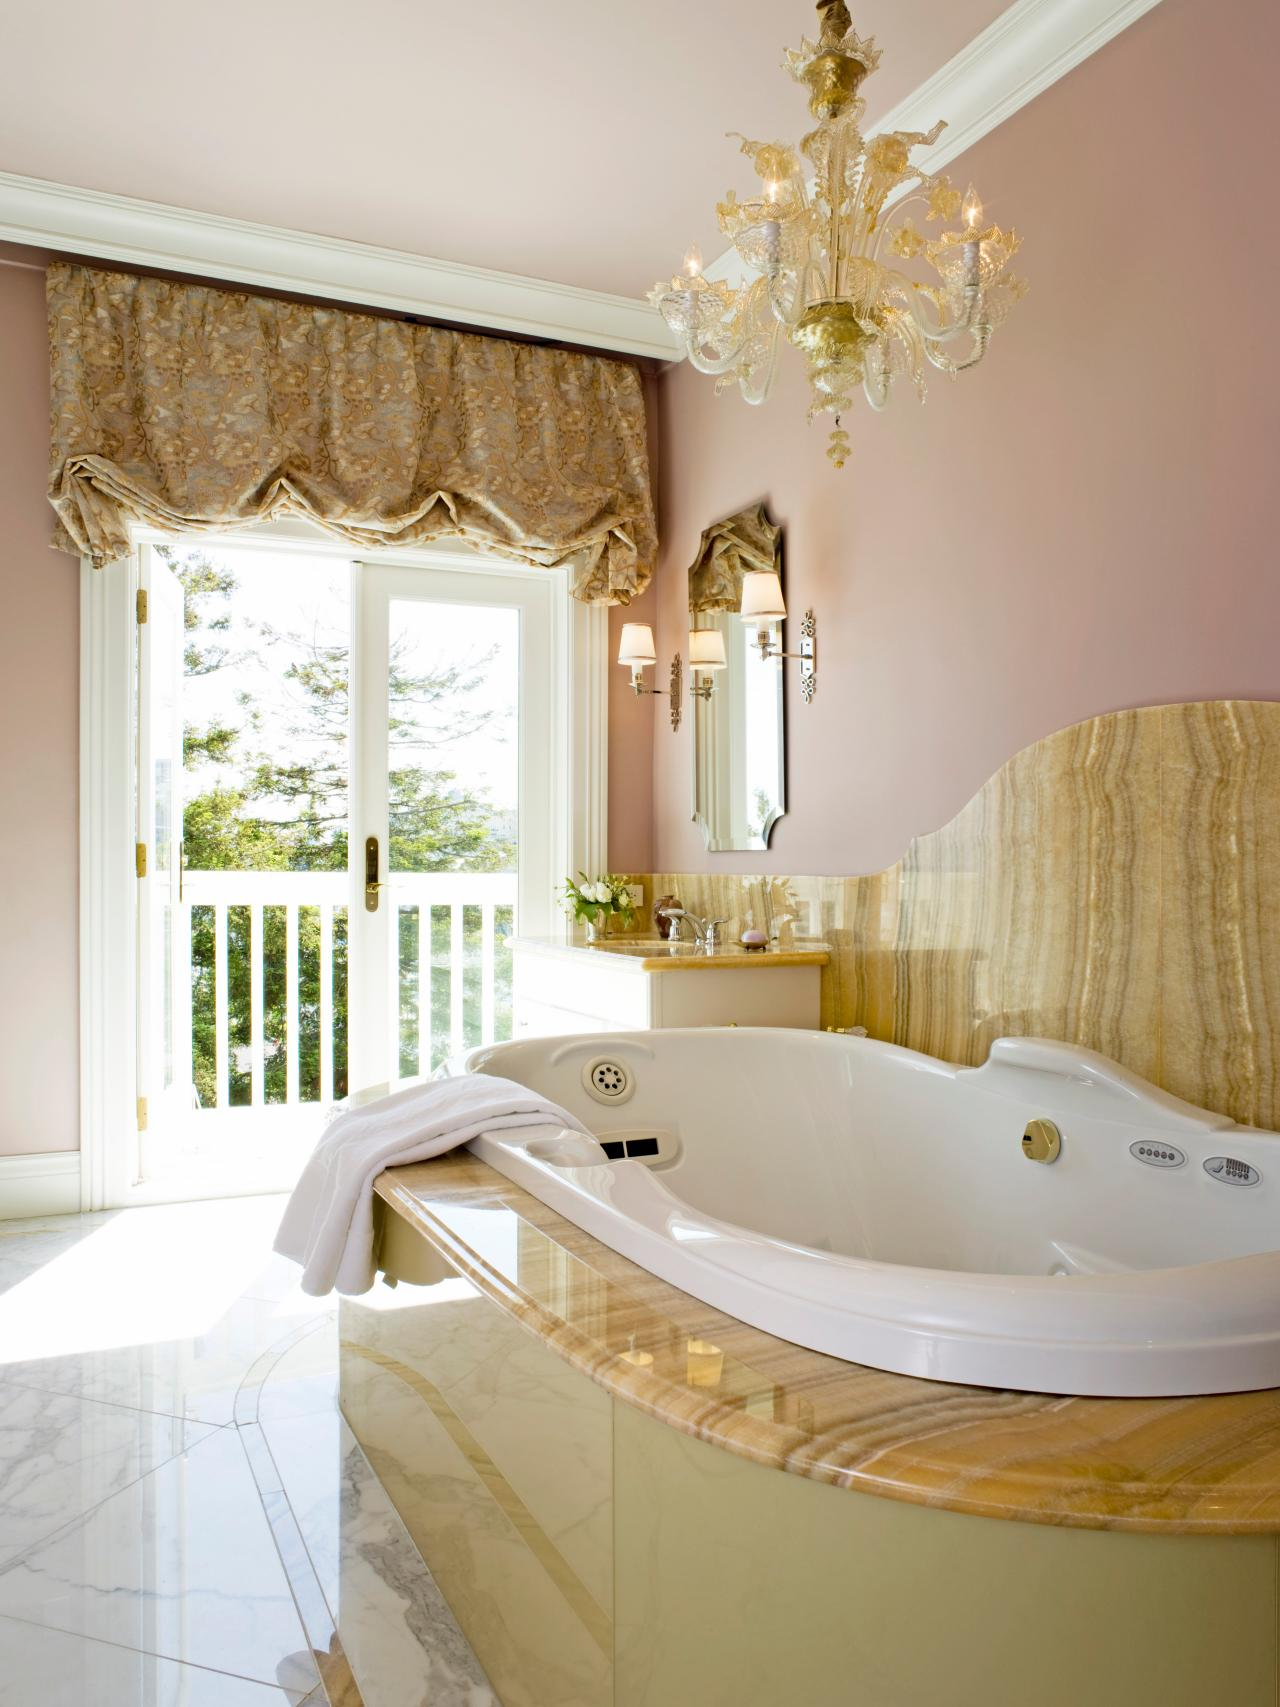 20 luxurious bathrooms with elegant chandelier lighting view in gallery bathroom lighting 13 aloadofball Image collections